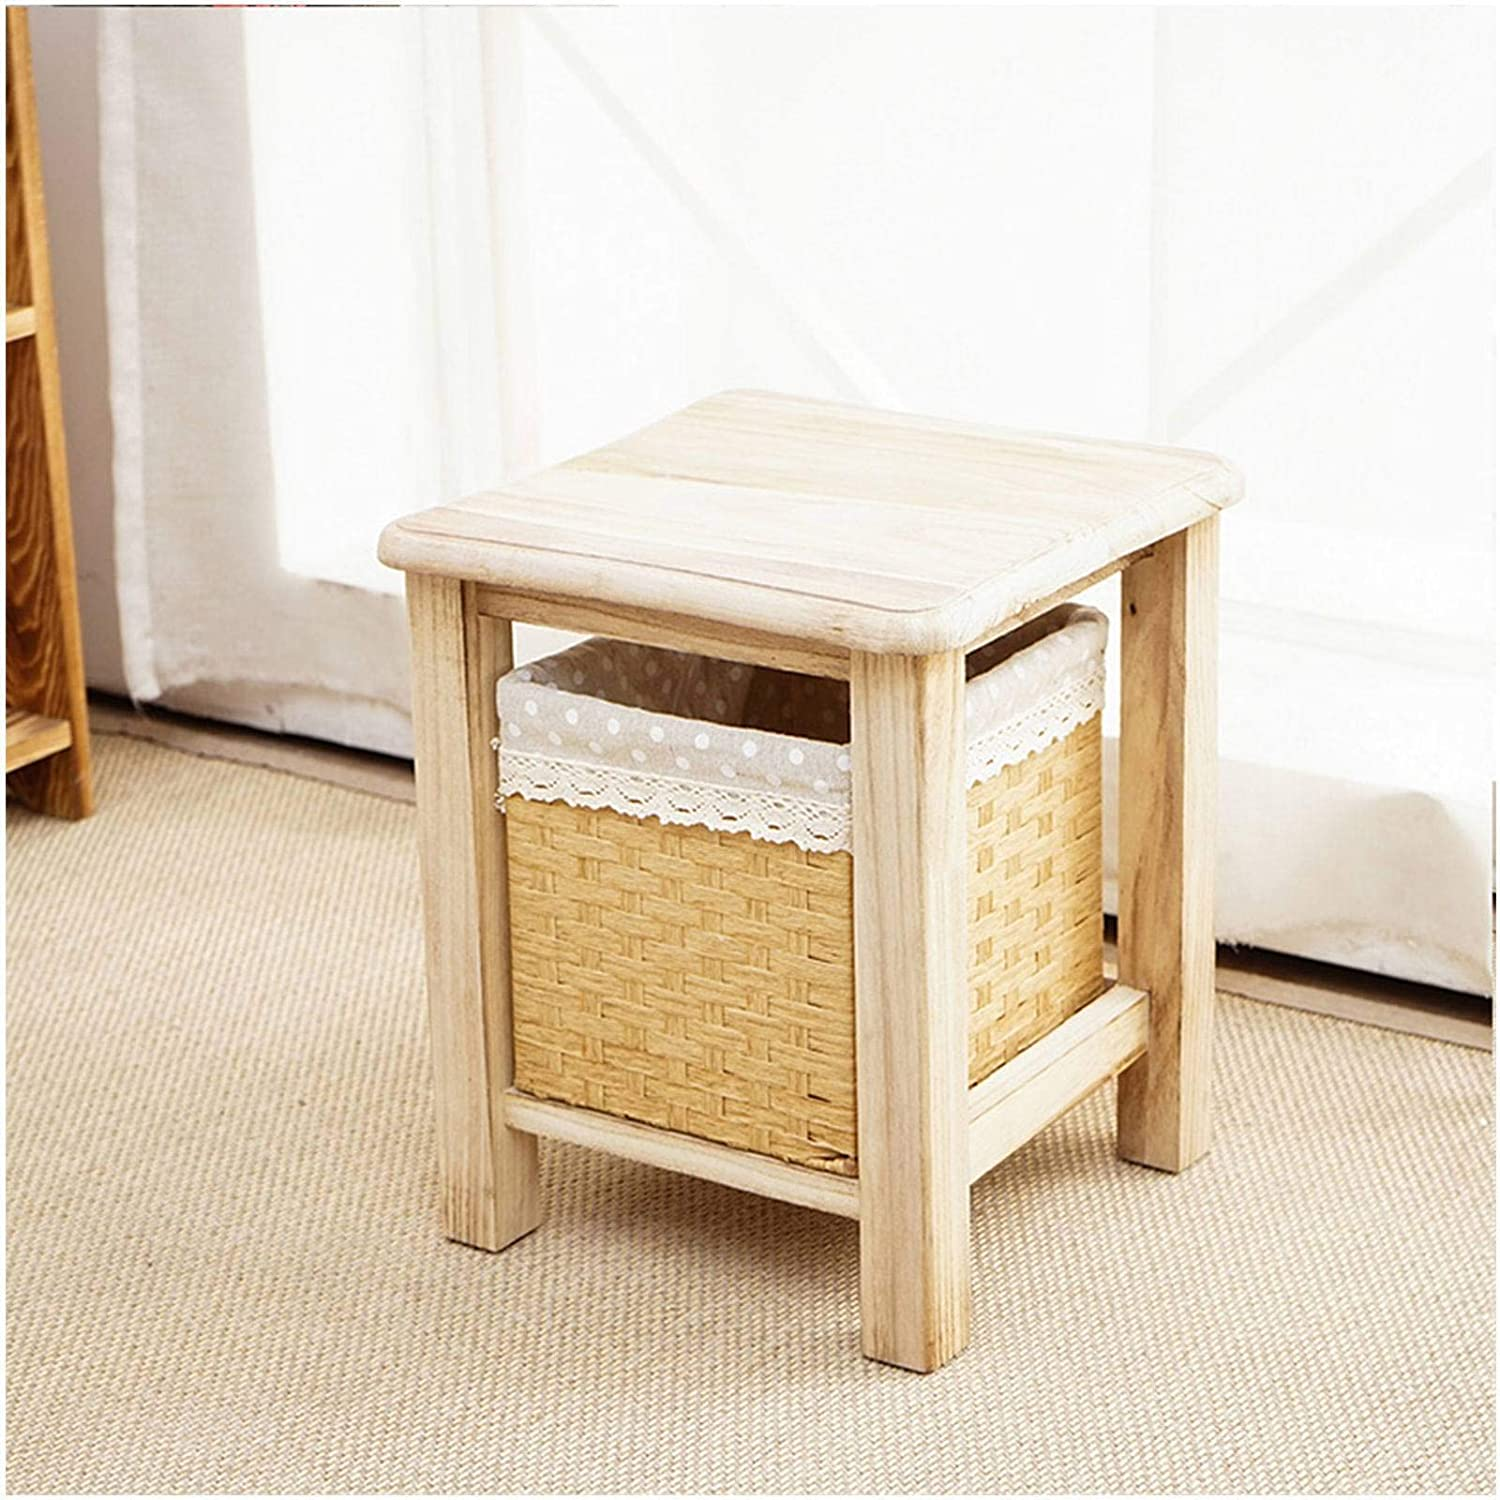 MO&SU Vintage Storage Stool, Waterproof Garden Stool Low Stool Solid Wood Ottoman Toy Storage Box for Living Room Bedroom-A-30x30x30cm(12x12x12inch)